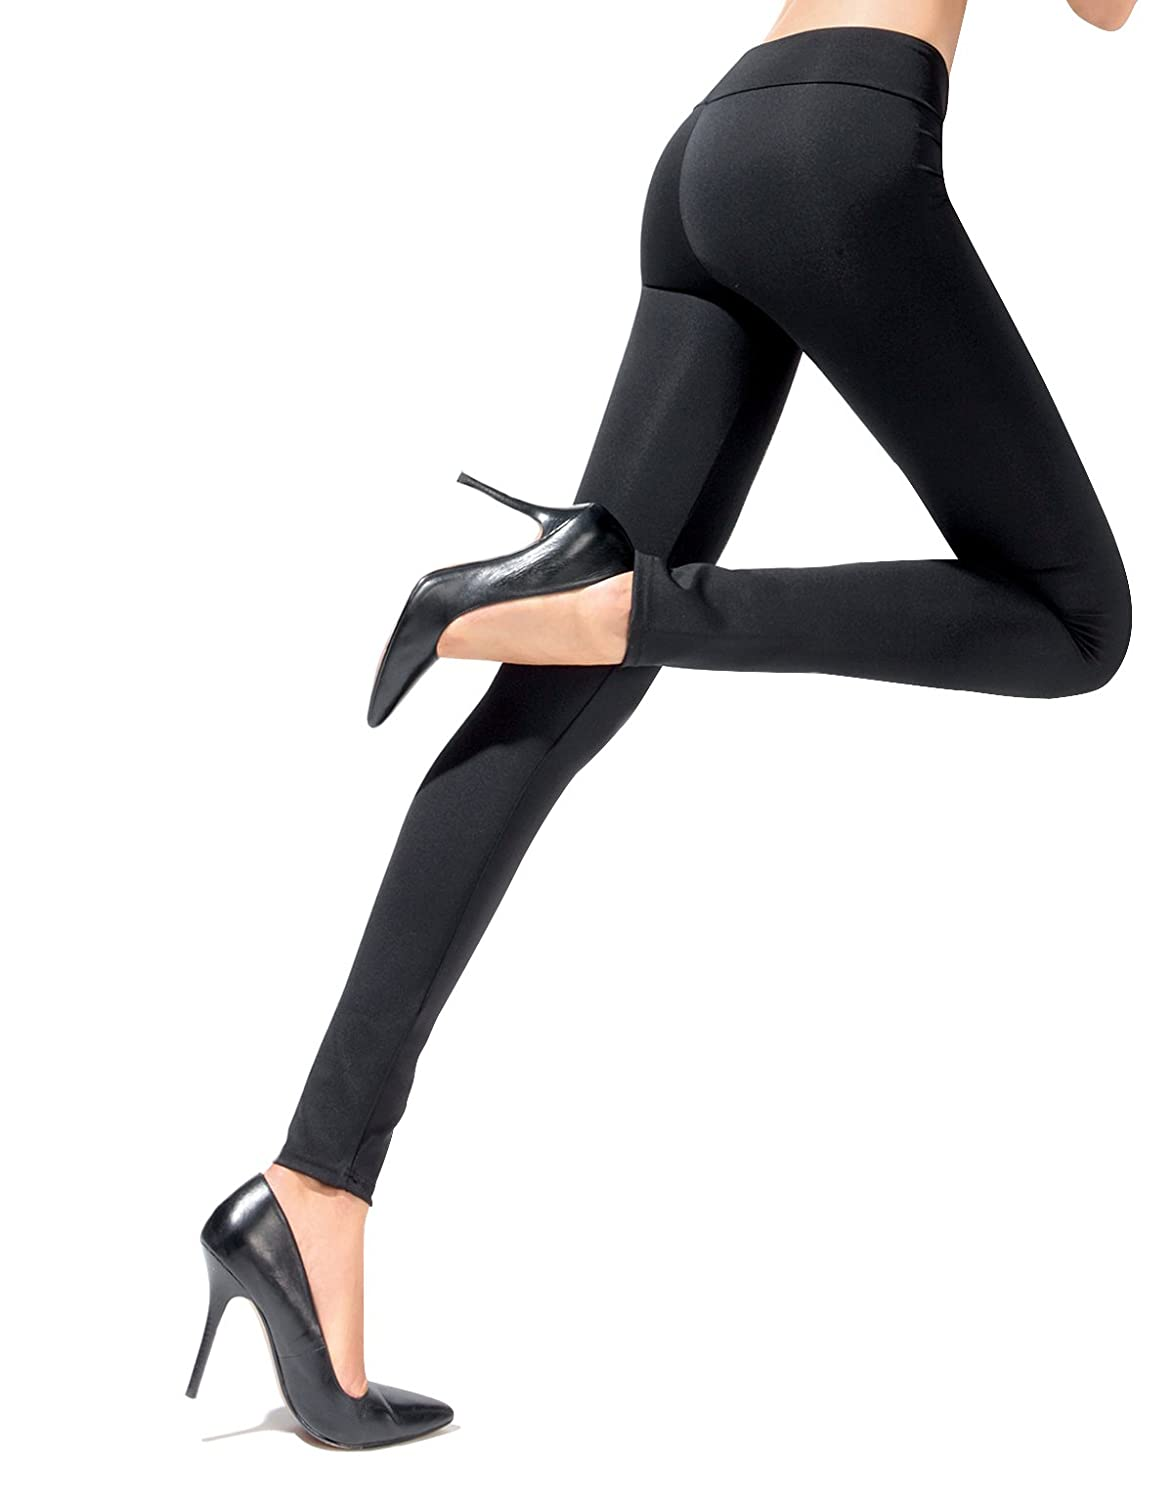 | LEGGINGS PUSH UP | MALLAS REDUCTORAS |LEGGINGS MODEADORES | S, M, L | NEGRO | CALCETERIA ITALIANA | 400011